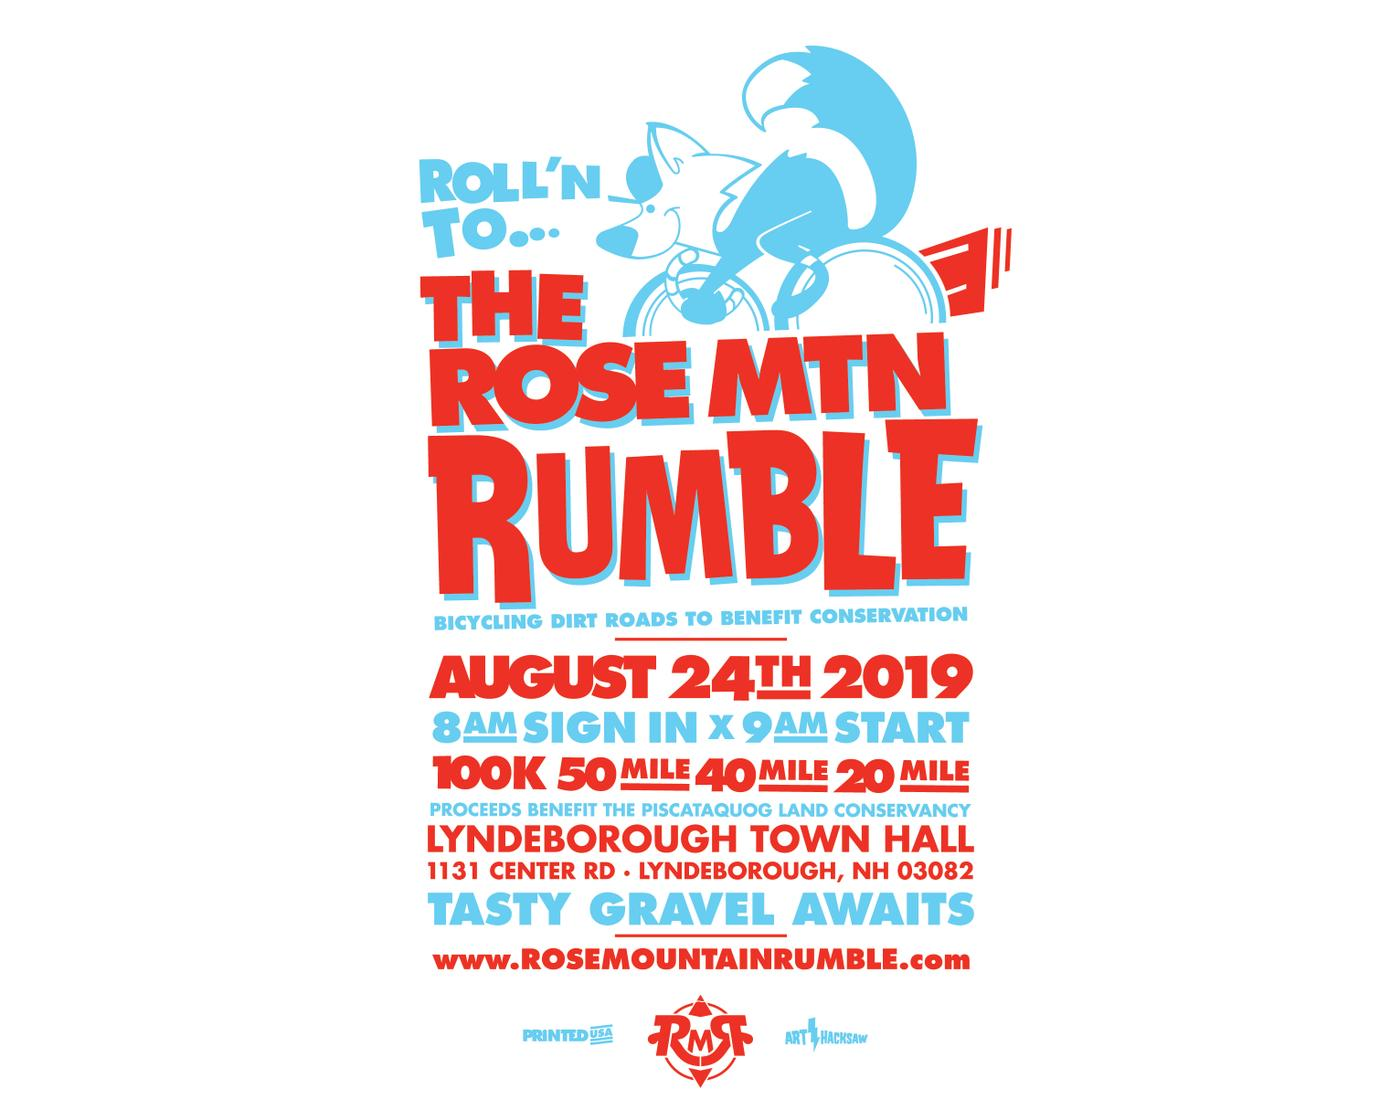 The 2019 Rose Mountain Rumble